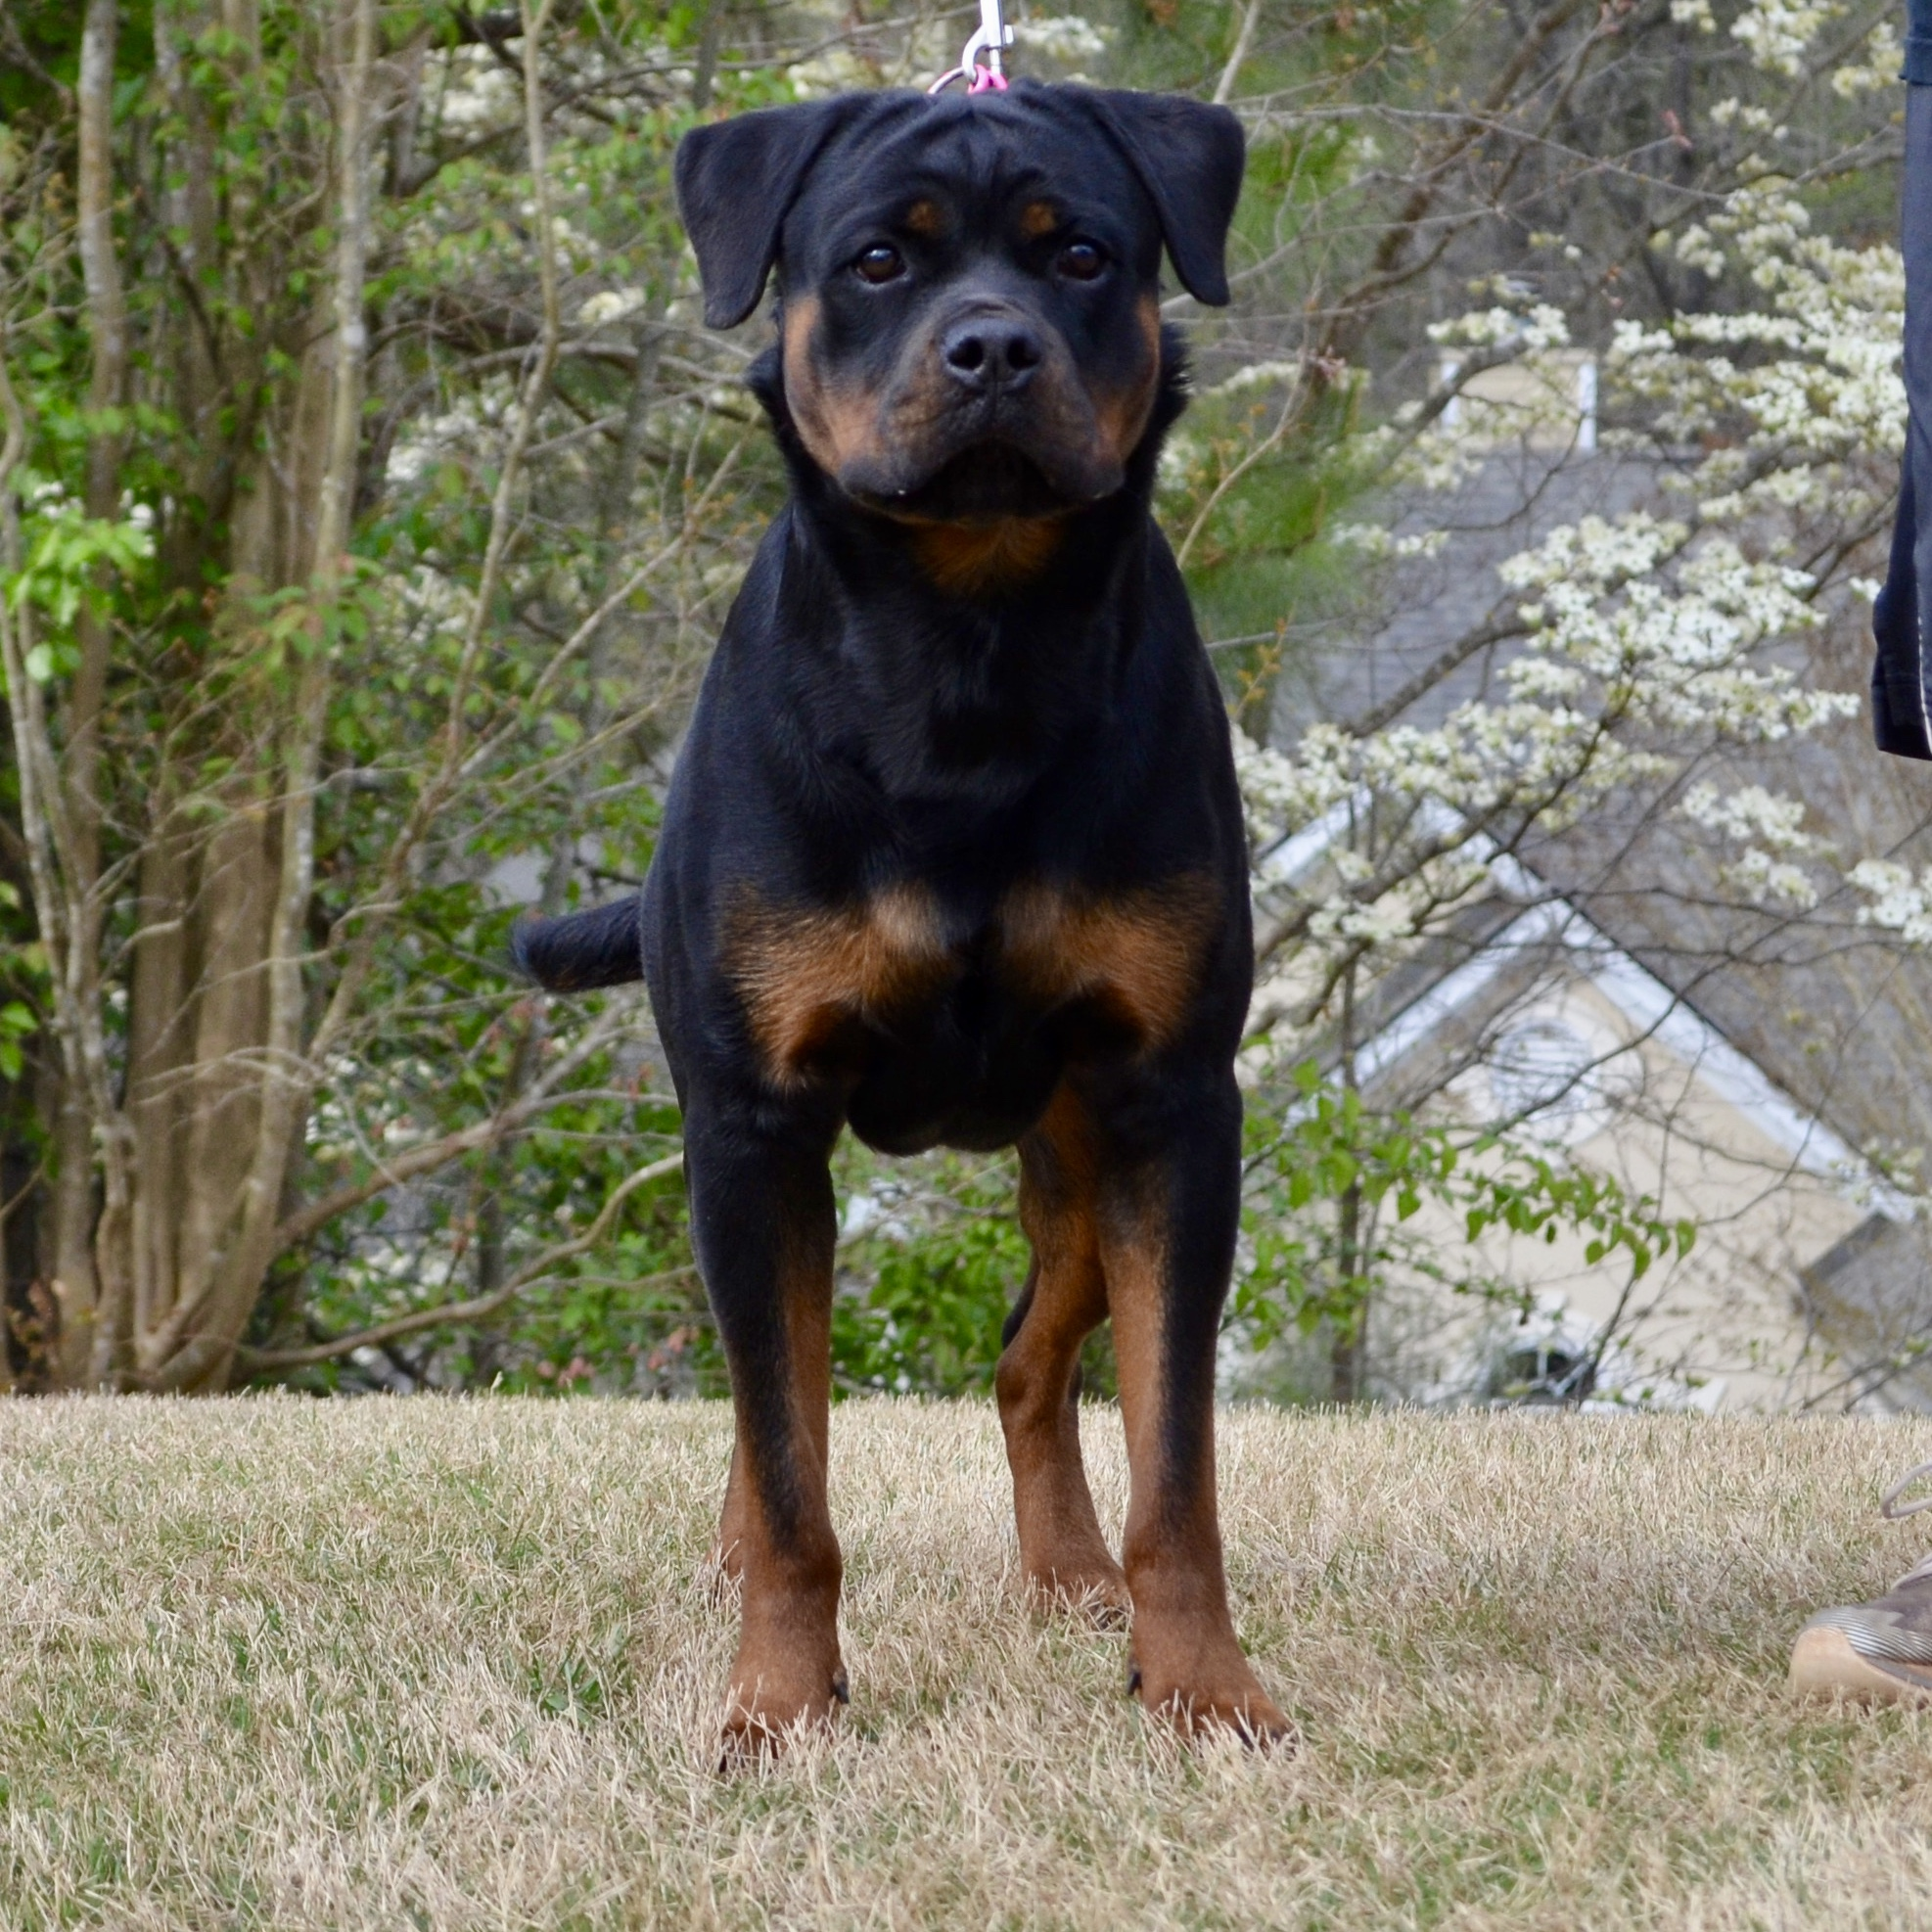 Kendy Vom Hause Earnest, Adult Female Rottweiler in GA